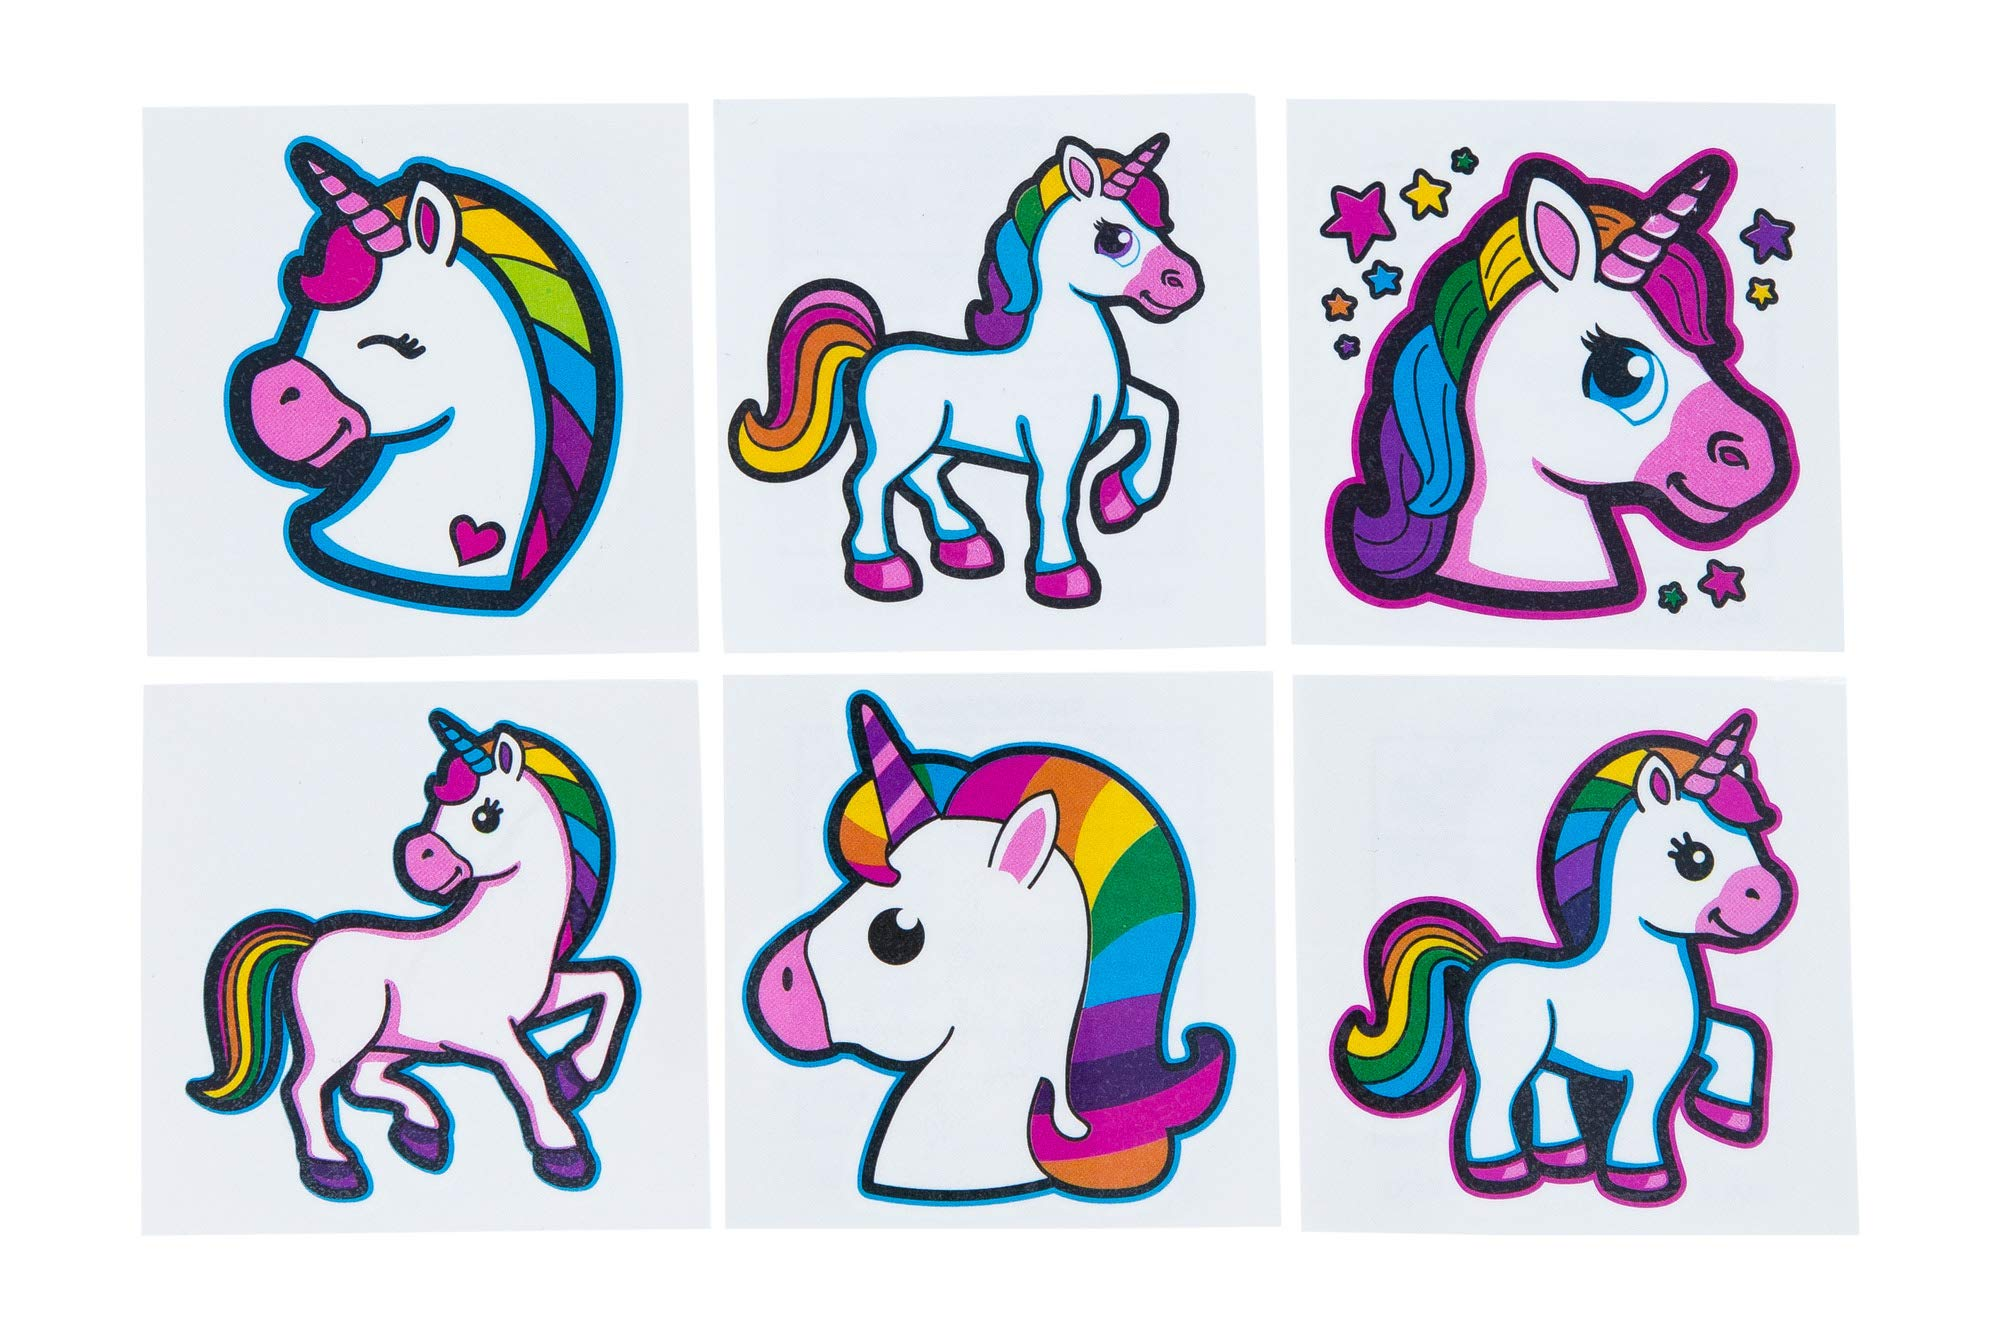 Unicorn Tattoos - 72 Pack Set Of Assorted Unicorn Temporary Tattoos - Great For Birthday Party Favors, Classrooms, Favor… 2